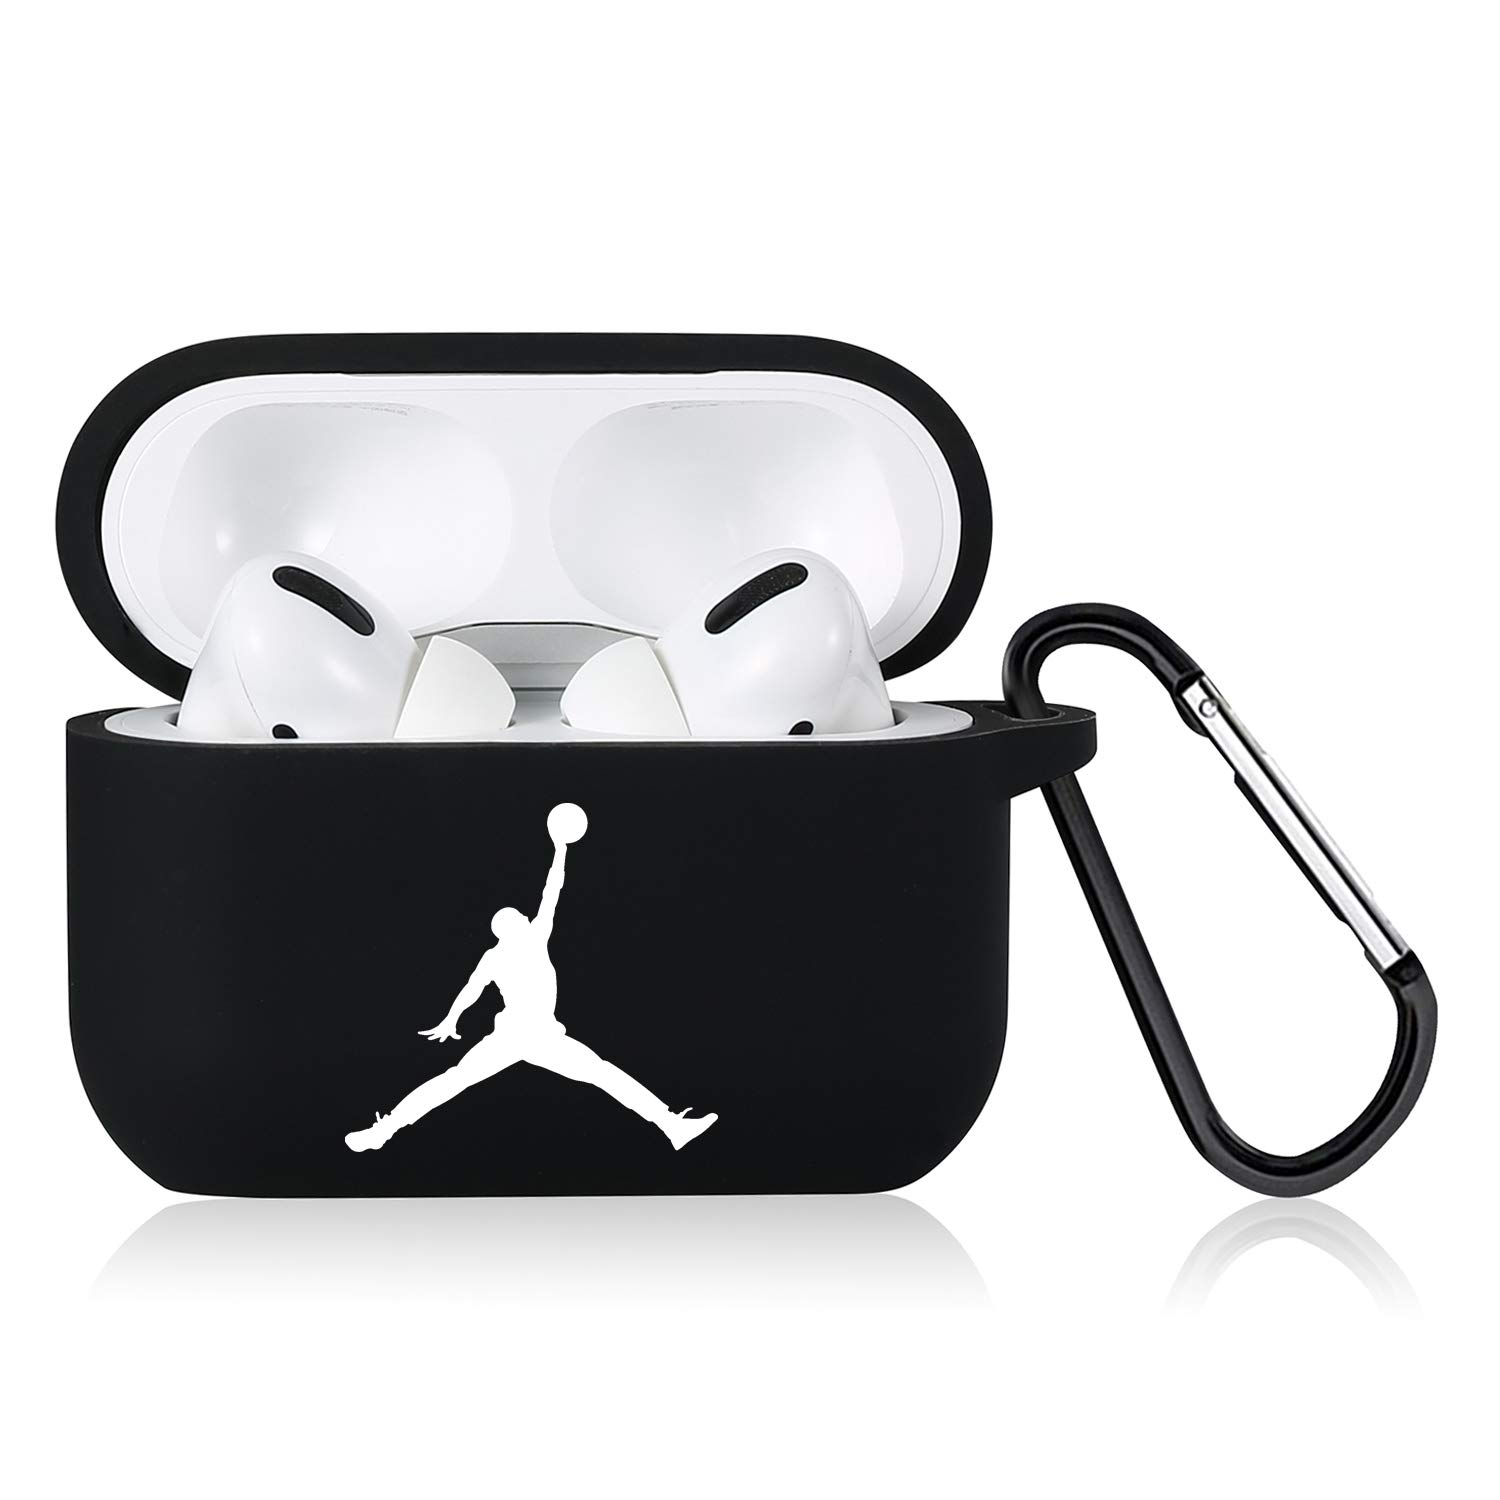 Punswan for Airpods Pro Case,Cute 3D Luxury Character Soft Silicone Stylish Cover, Sport Cool Keychain Style Design Skin,Cases with Lanyard Chain,for Girls Kids Boys Men Air pods Pro/3 (Black Jorda)